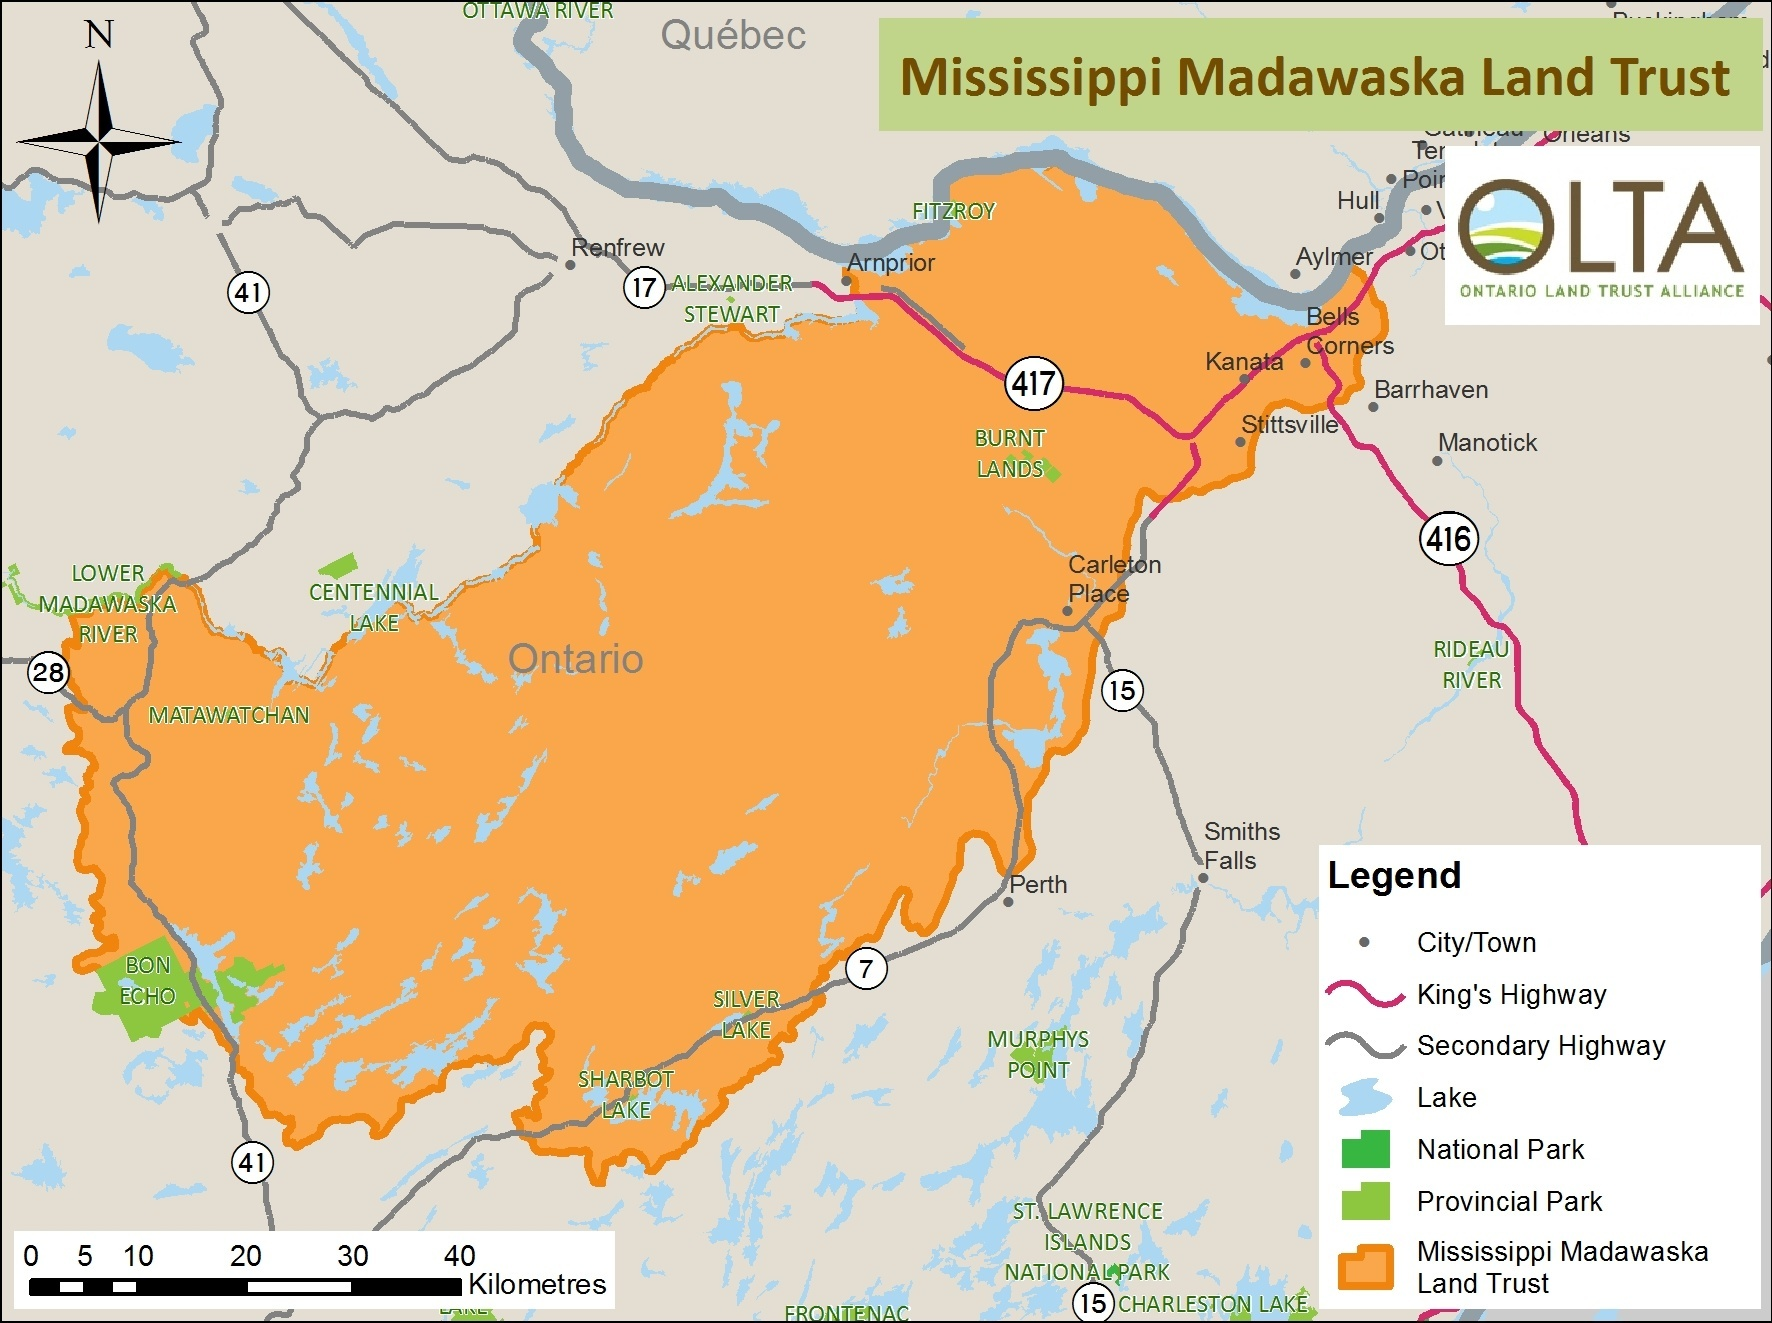 Mississippi Madawaska Land Trust area of operations map